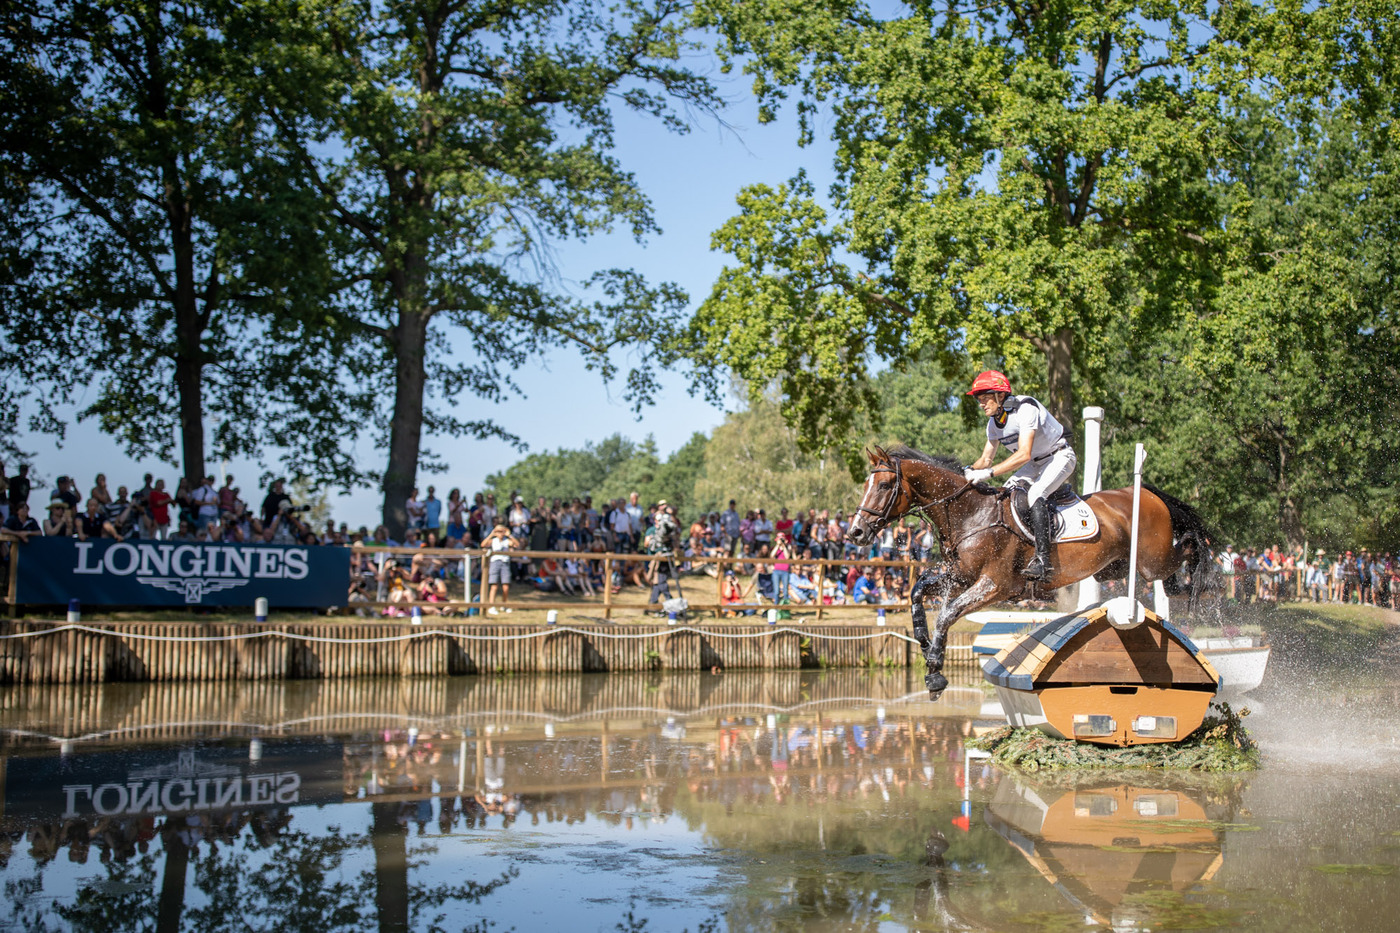 Longines Eventing Event: Team Germany claimed the 2019 Longines FEI Eventing European Championships crown in Luhmühlen 1